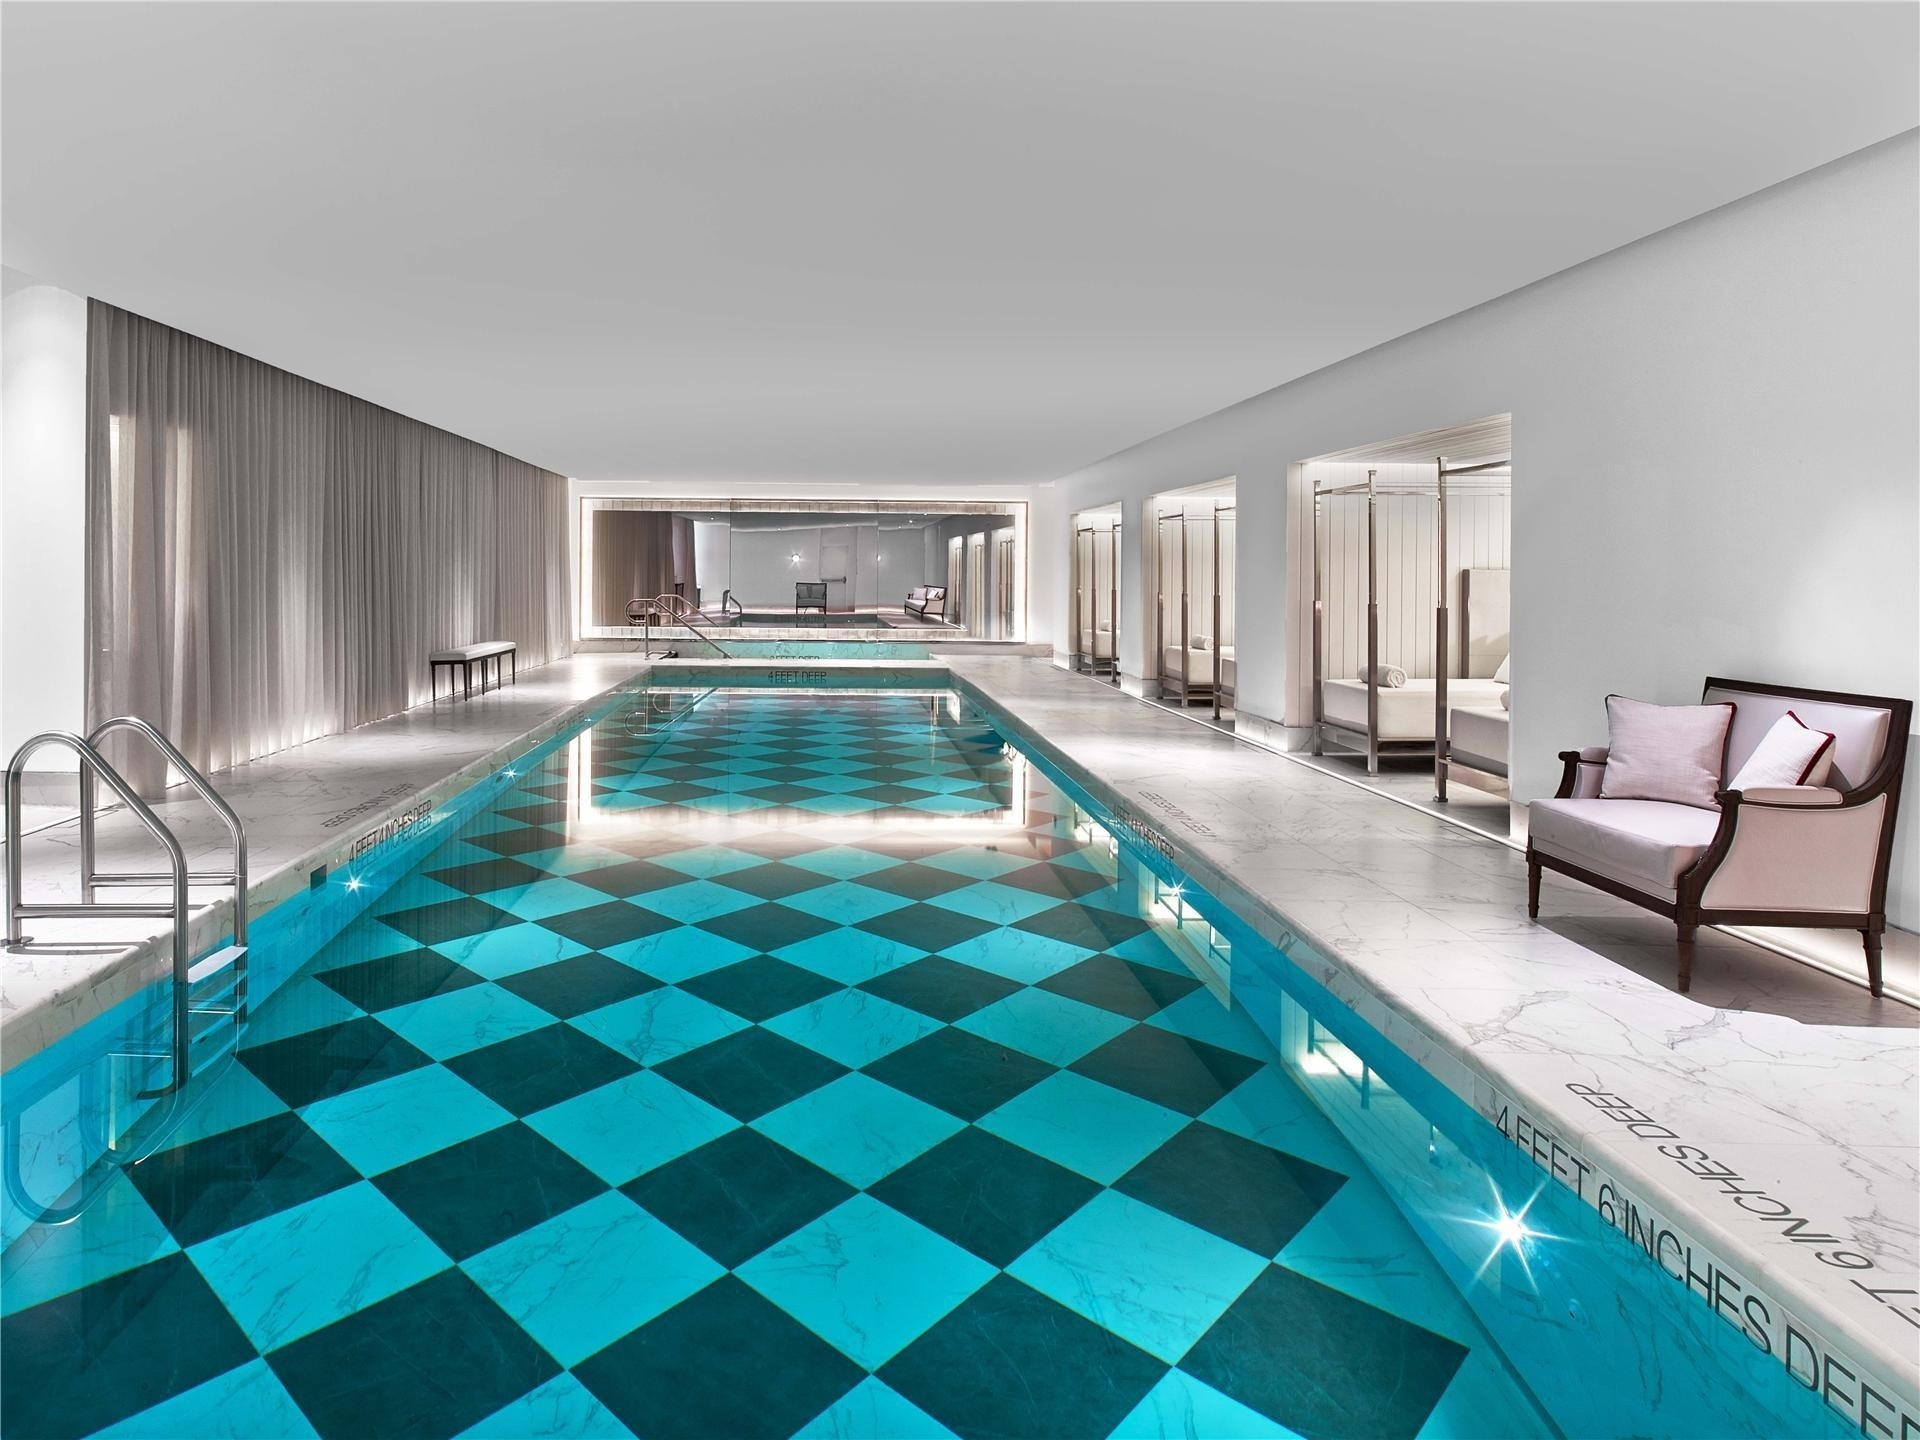 17. Condominiums for Sale at BACCARAT HOTEL & RESIDENCES, 20 West 53rd St, PH48/49 Midtown West, New York, NY 10019